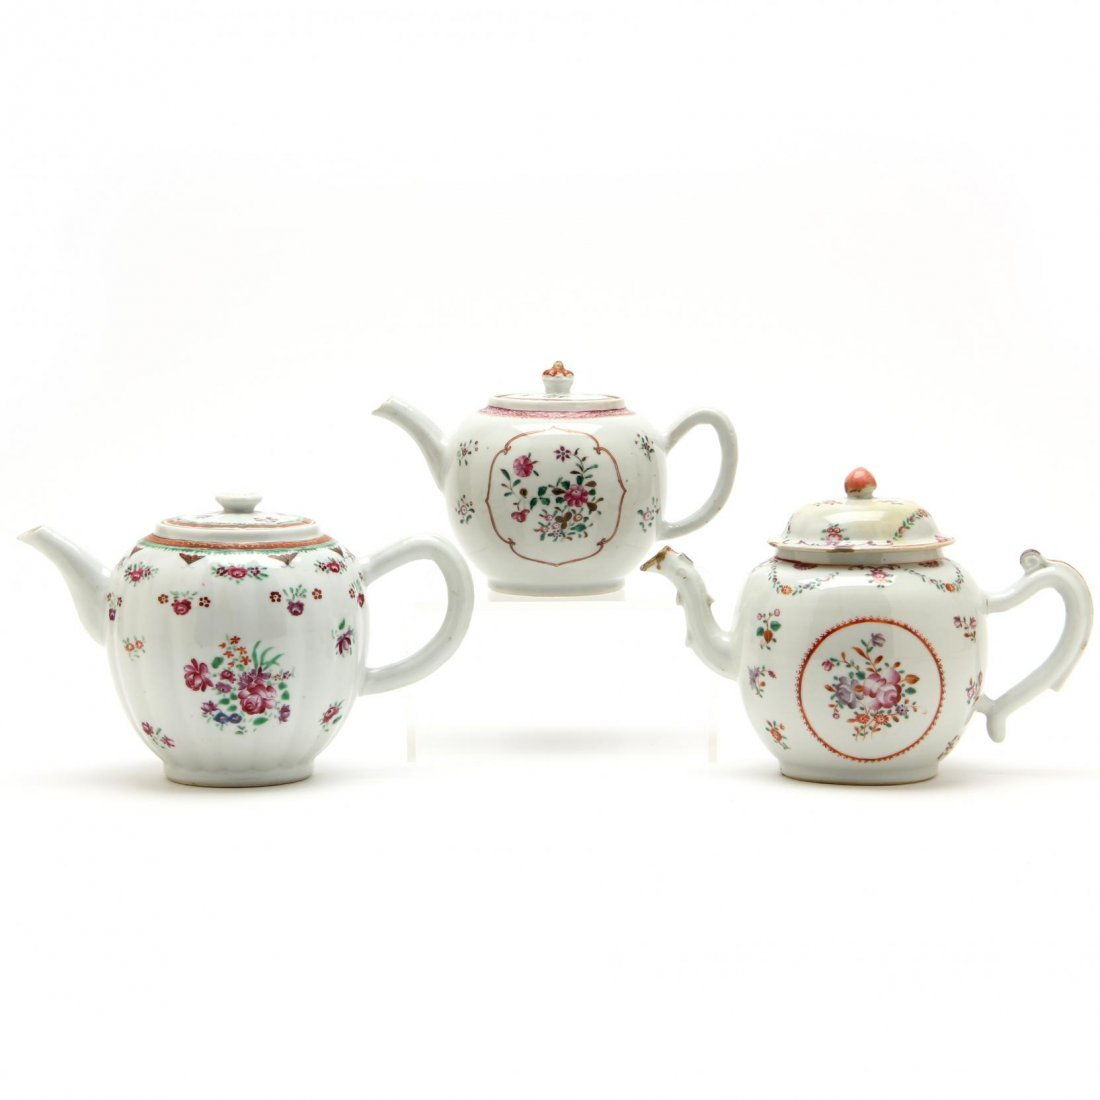 Three Antique Chinese Export Teapots